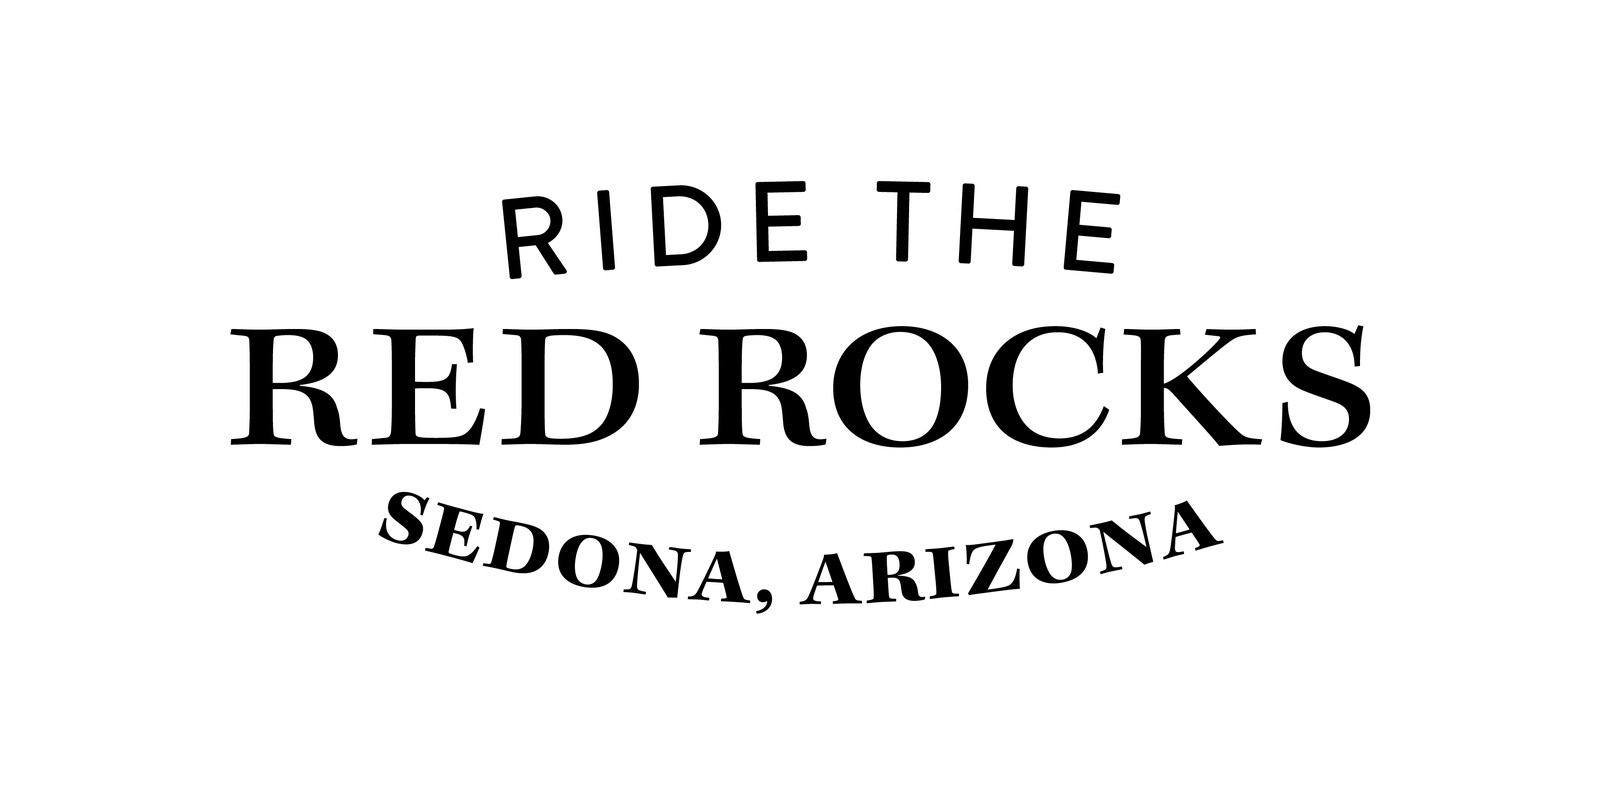 Ride the Red Rocks